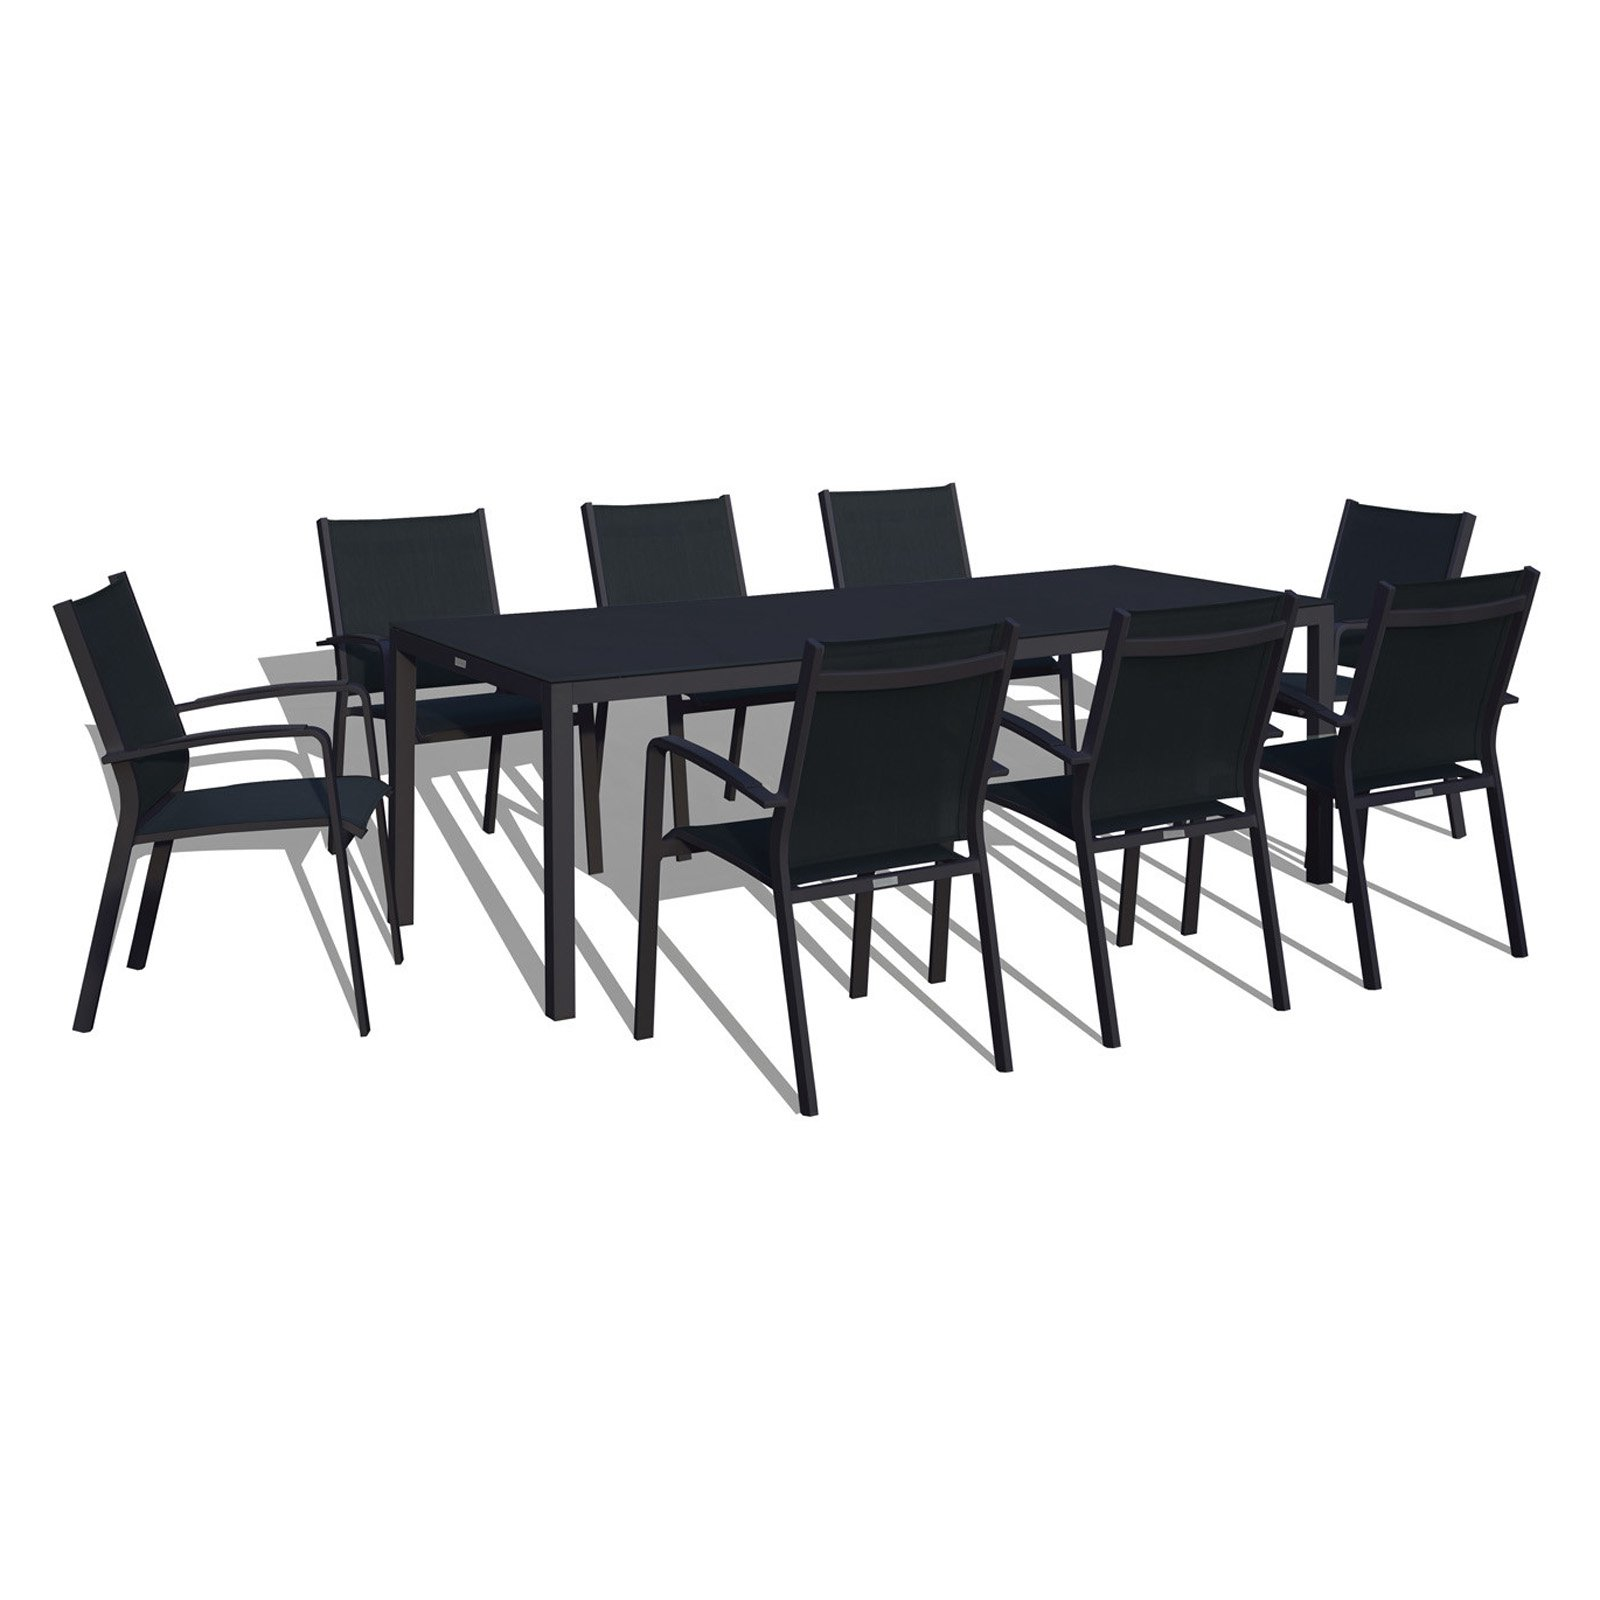 Urban Furnishing 9 Piece Outdoor Patio Dining Set